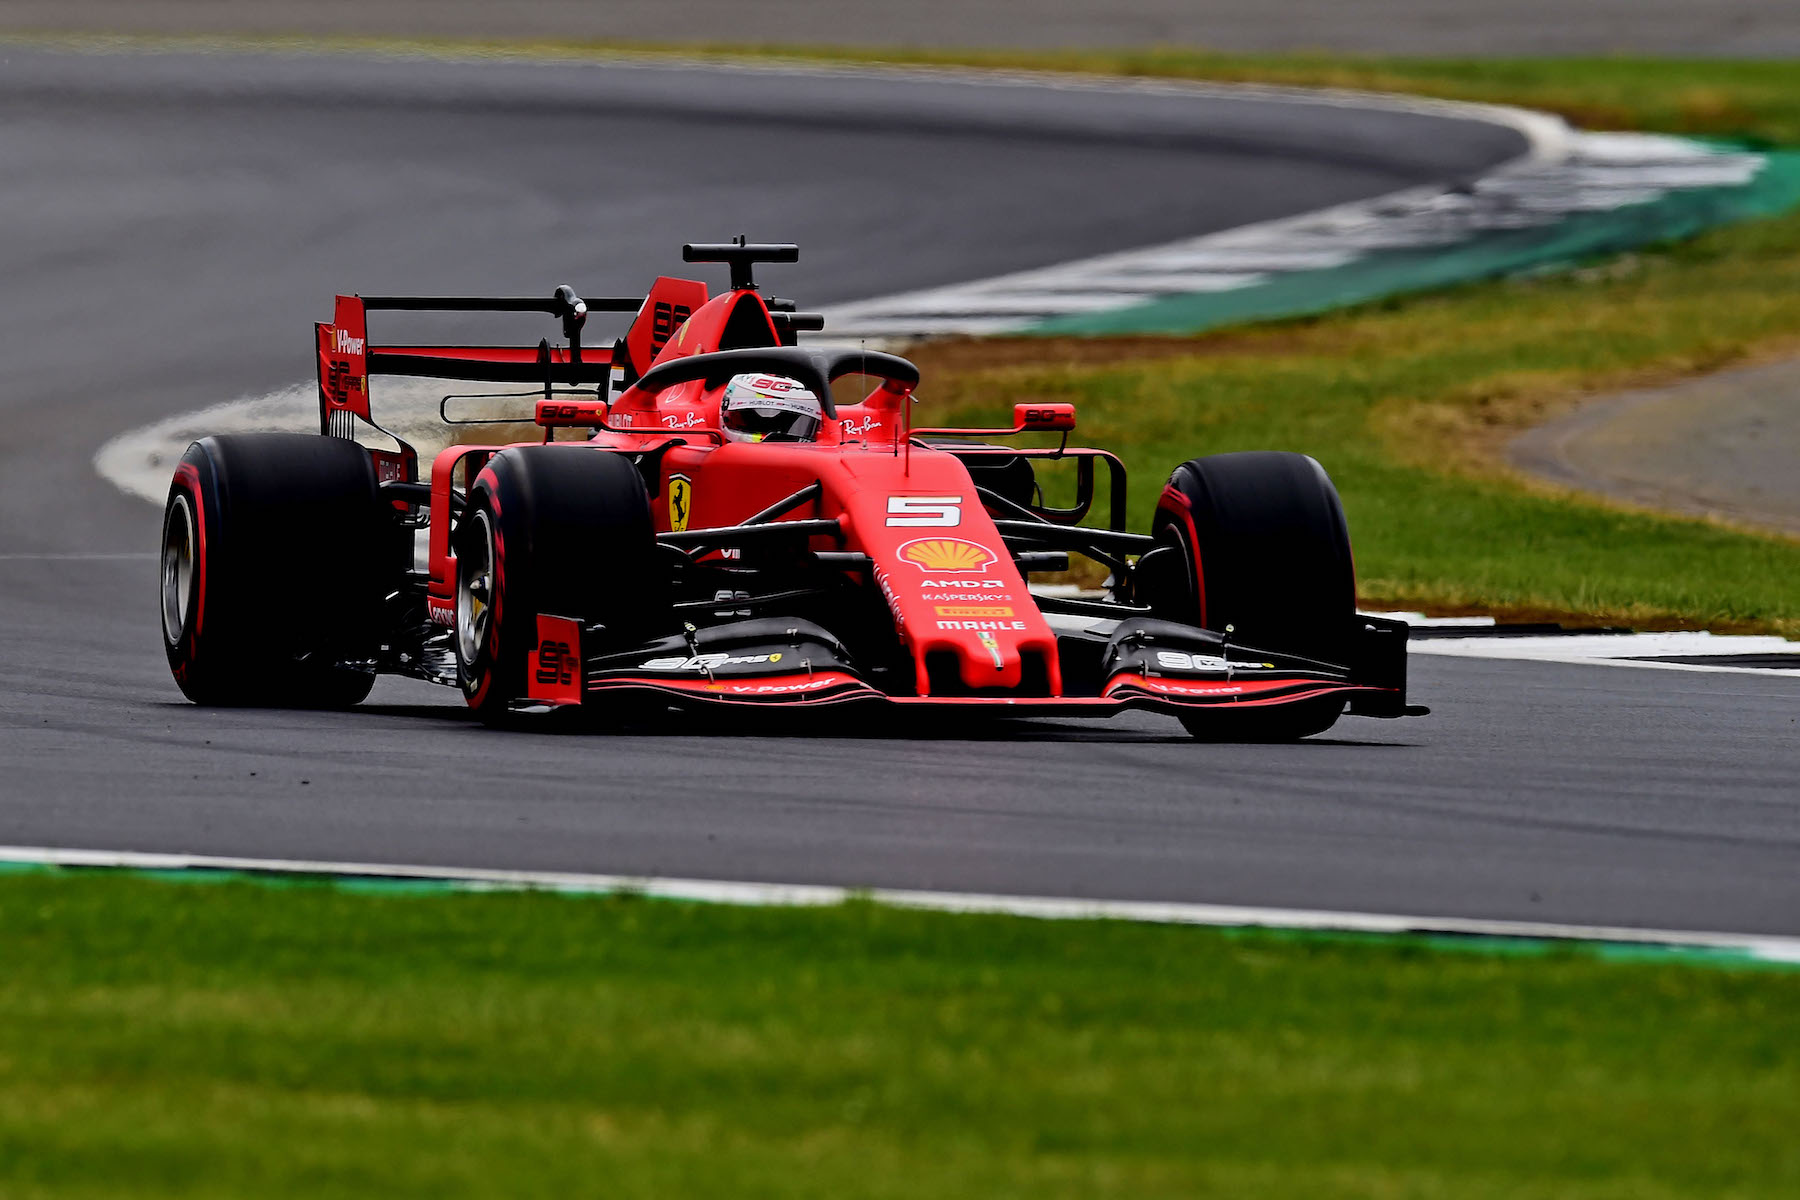 3 2019 British Grand Prix Saturday 42.jpg